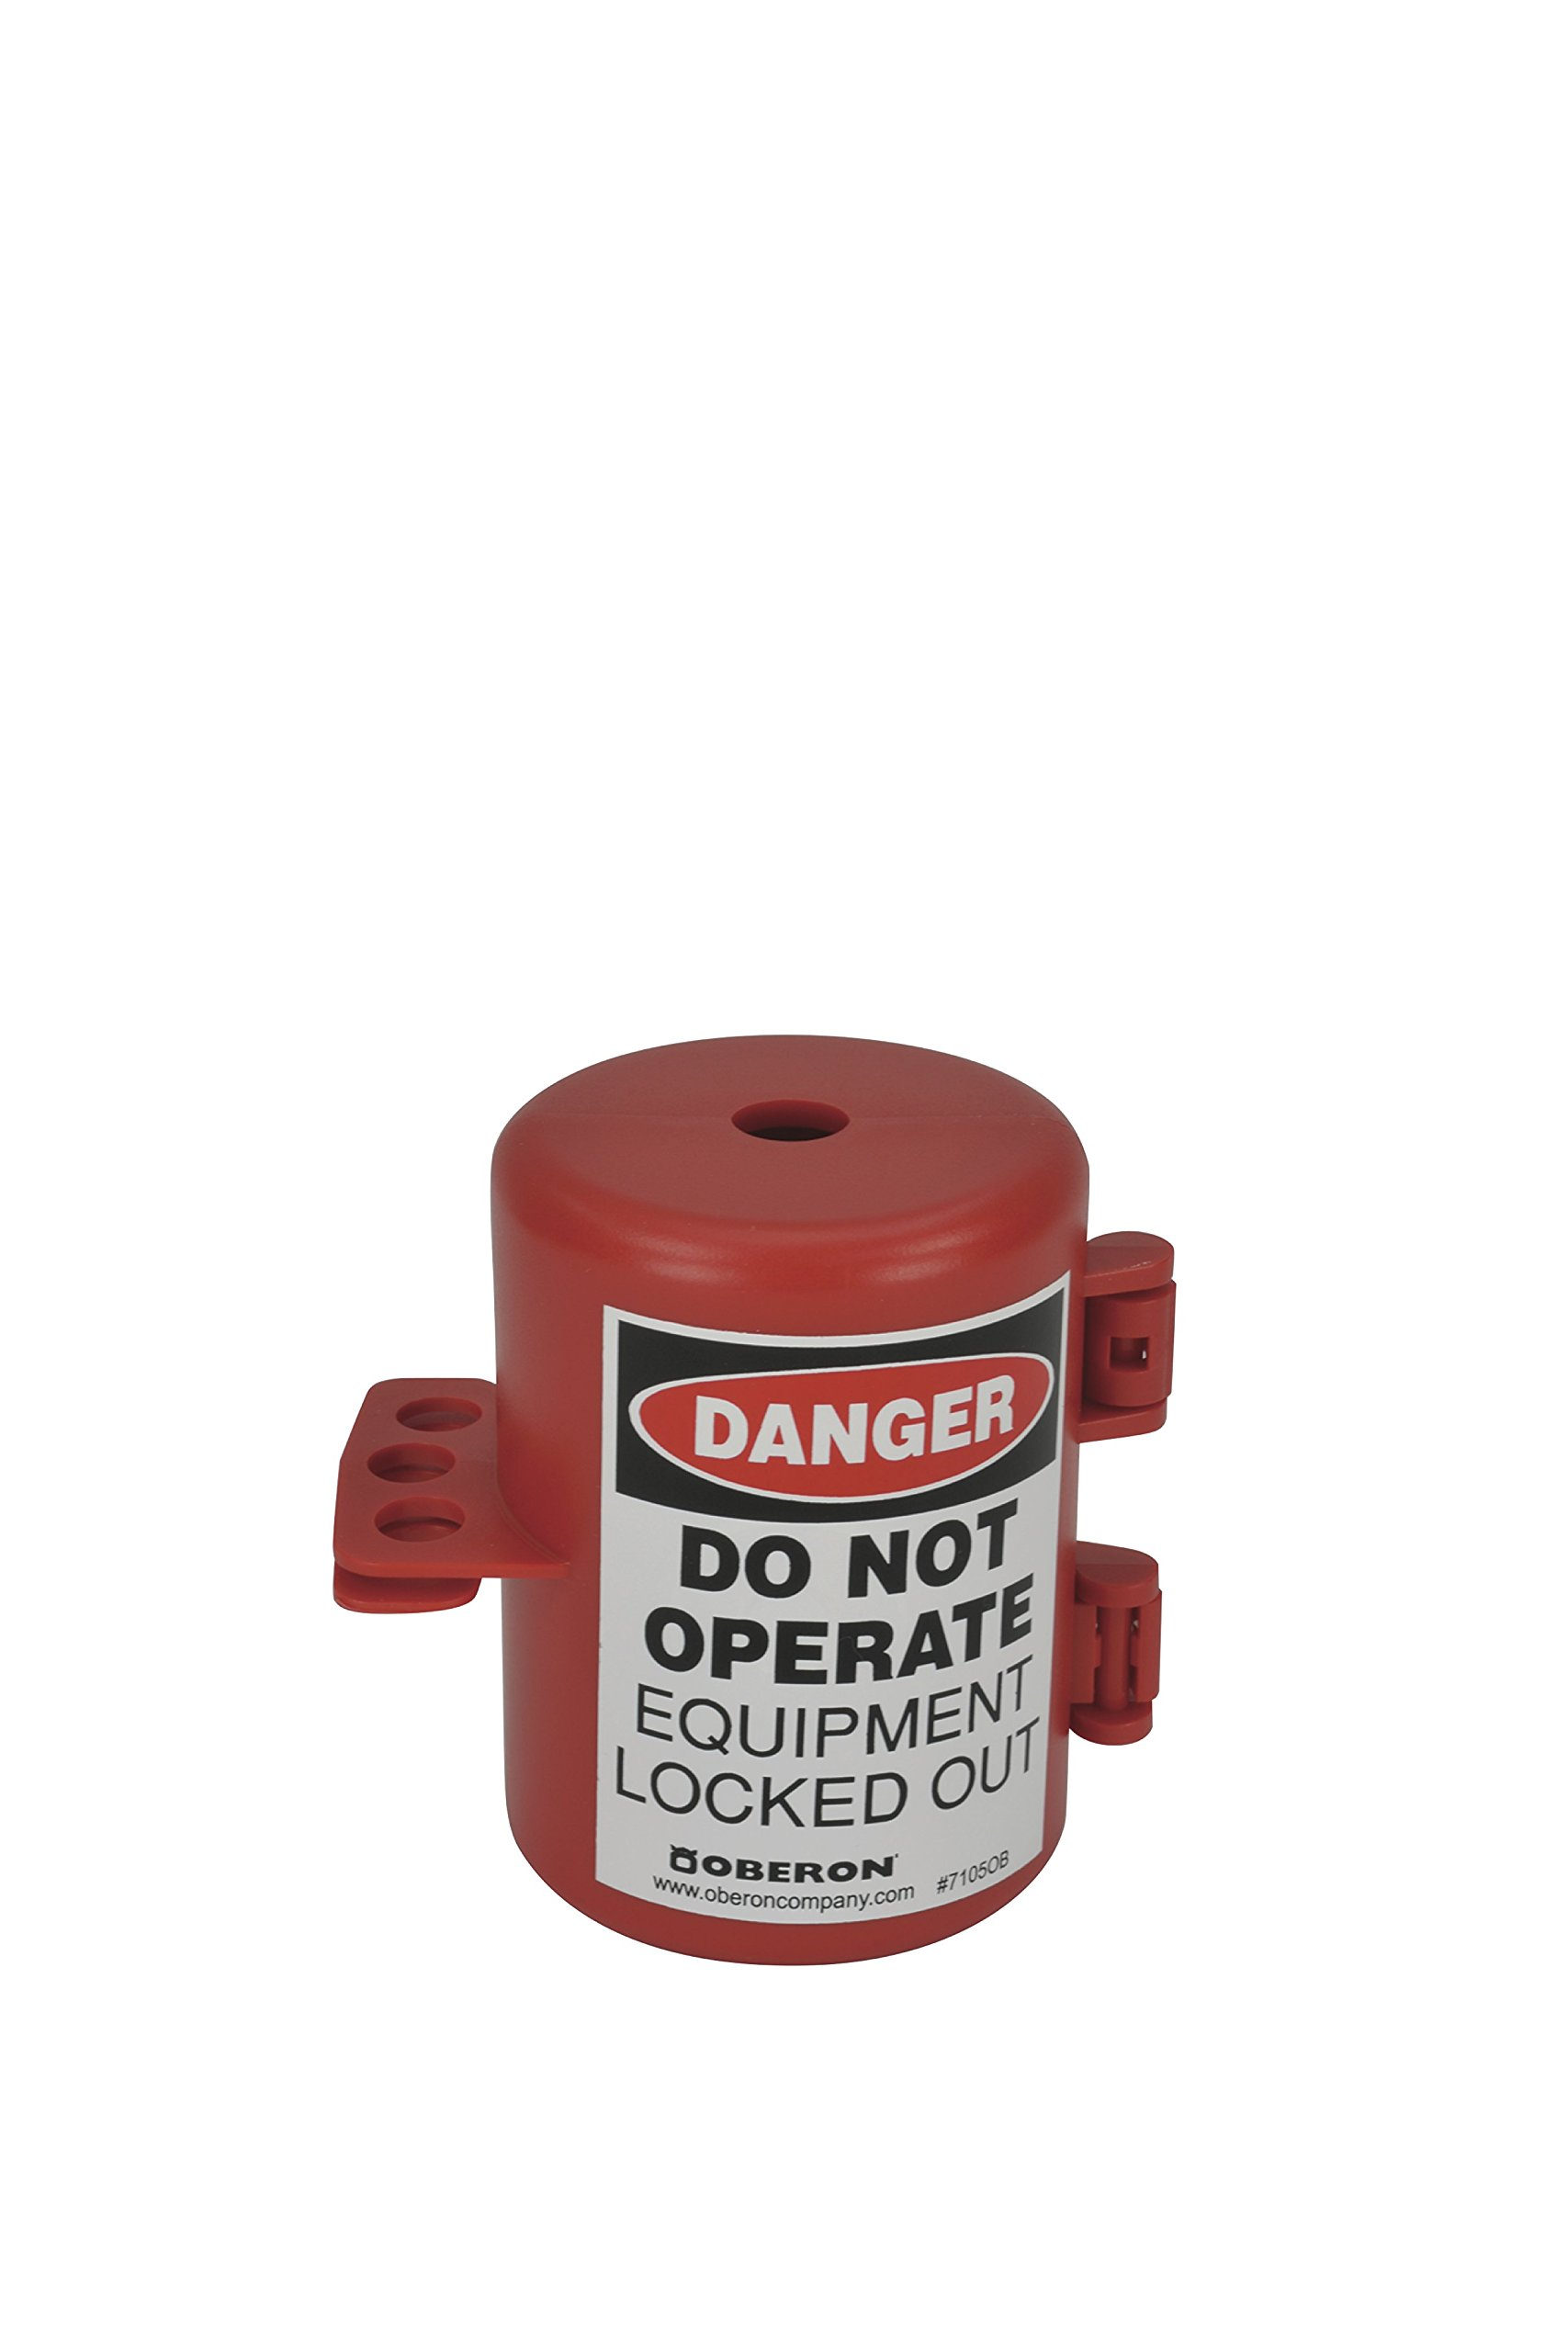 Oberon PLUG-SM Plug Lockout, 120V, Small, Red by Oberon Company